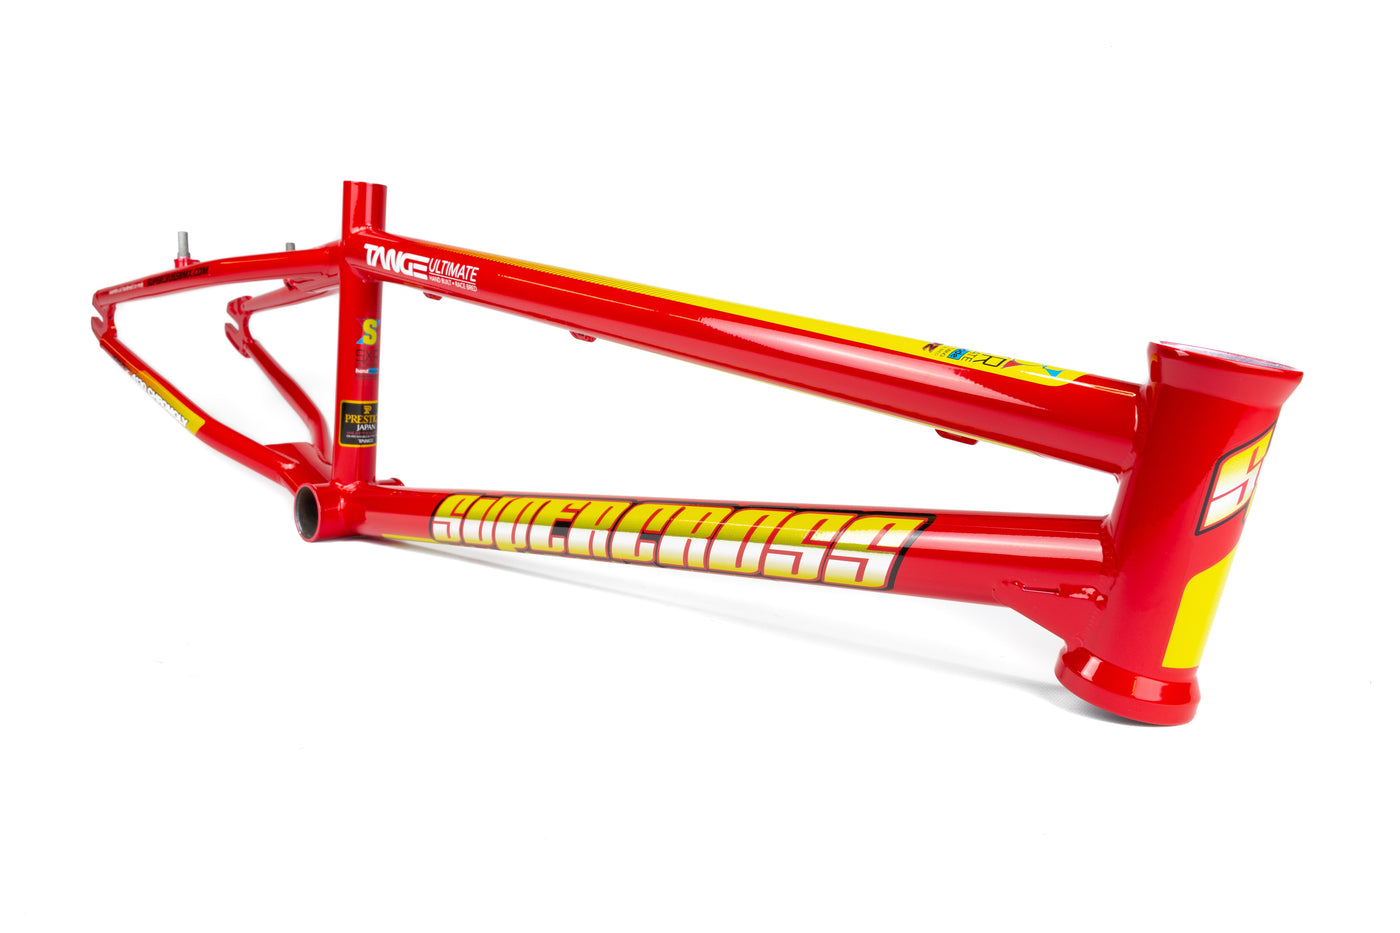 Supercross BMX - The Worlds Best BMX Racing Frames and Parts